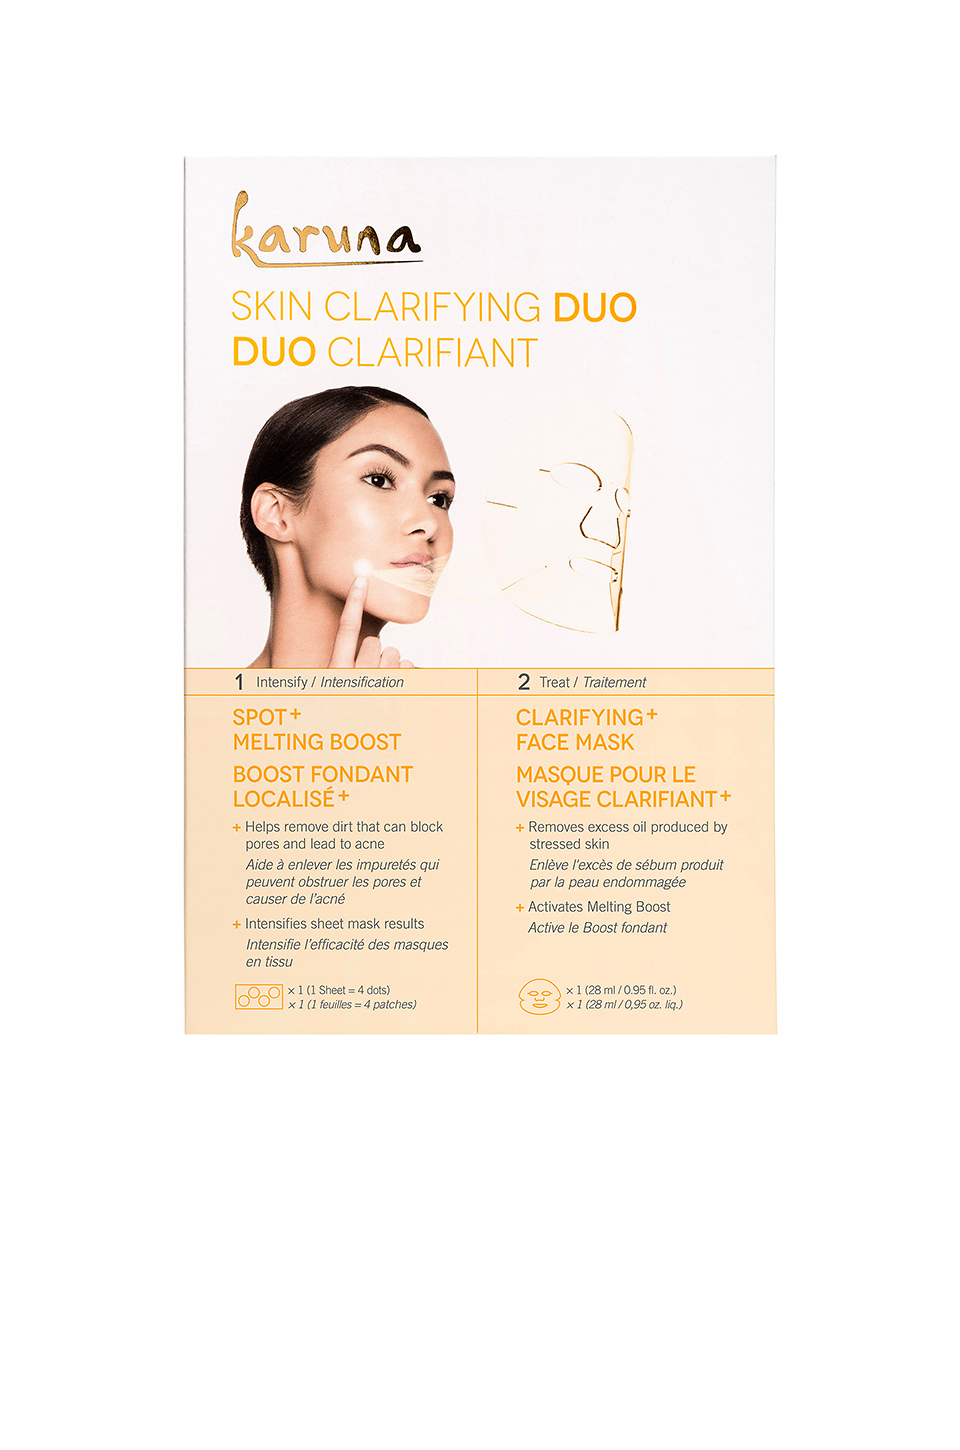 Karuna Skin Clarifying Duo in